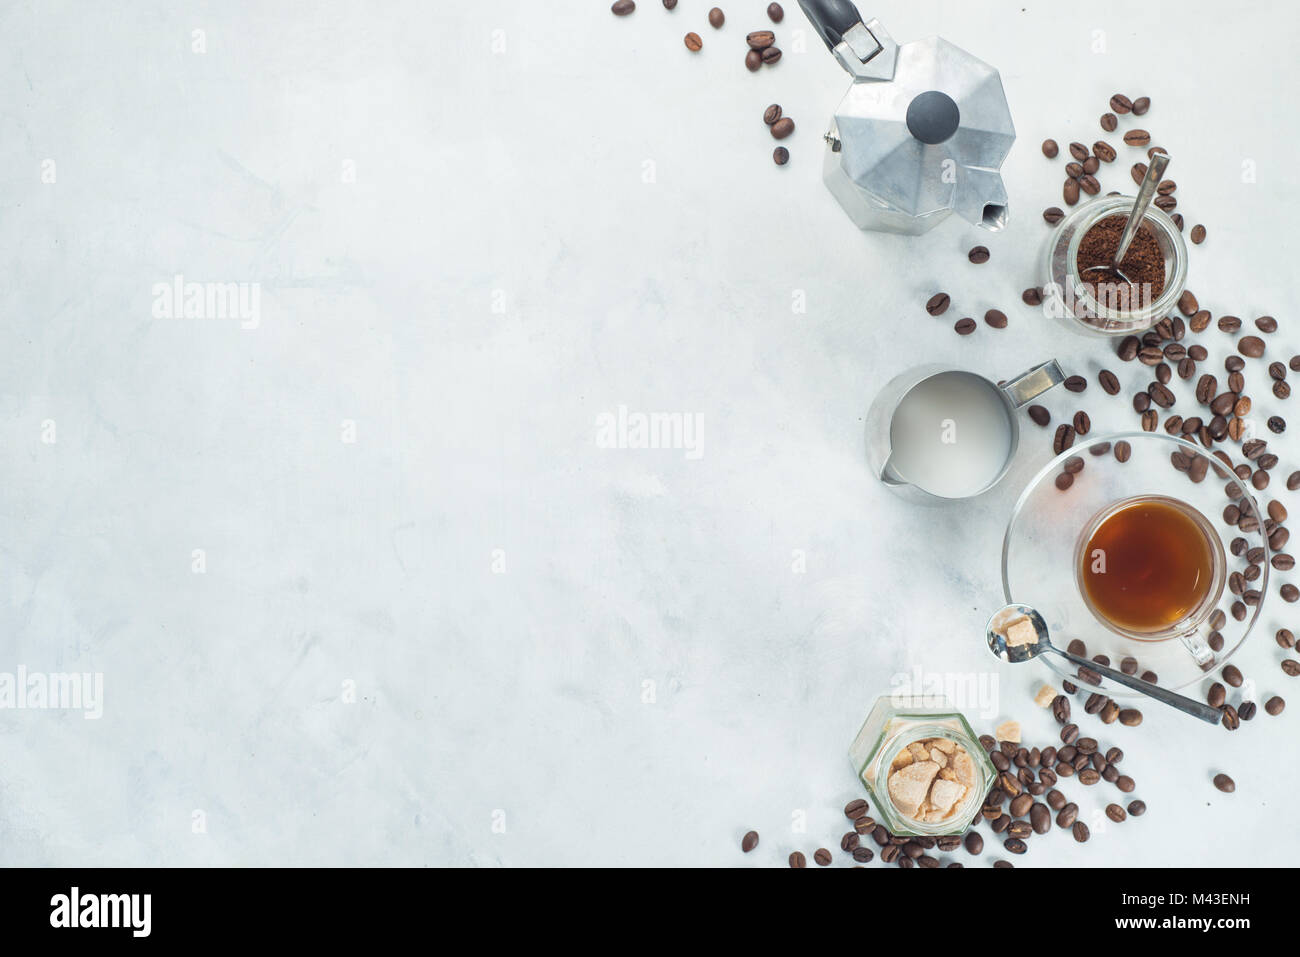 Brewing coffee in Moka pot concept. Glass espresso cup, milk jug, and sugar in high key flat lay on a white concrete - Stock Image